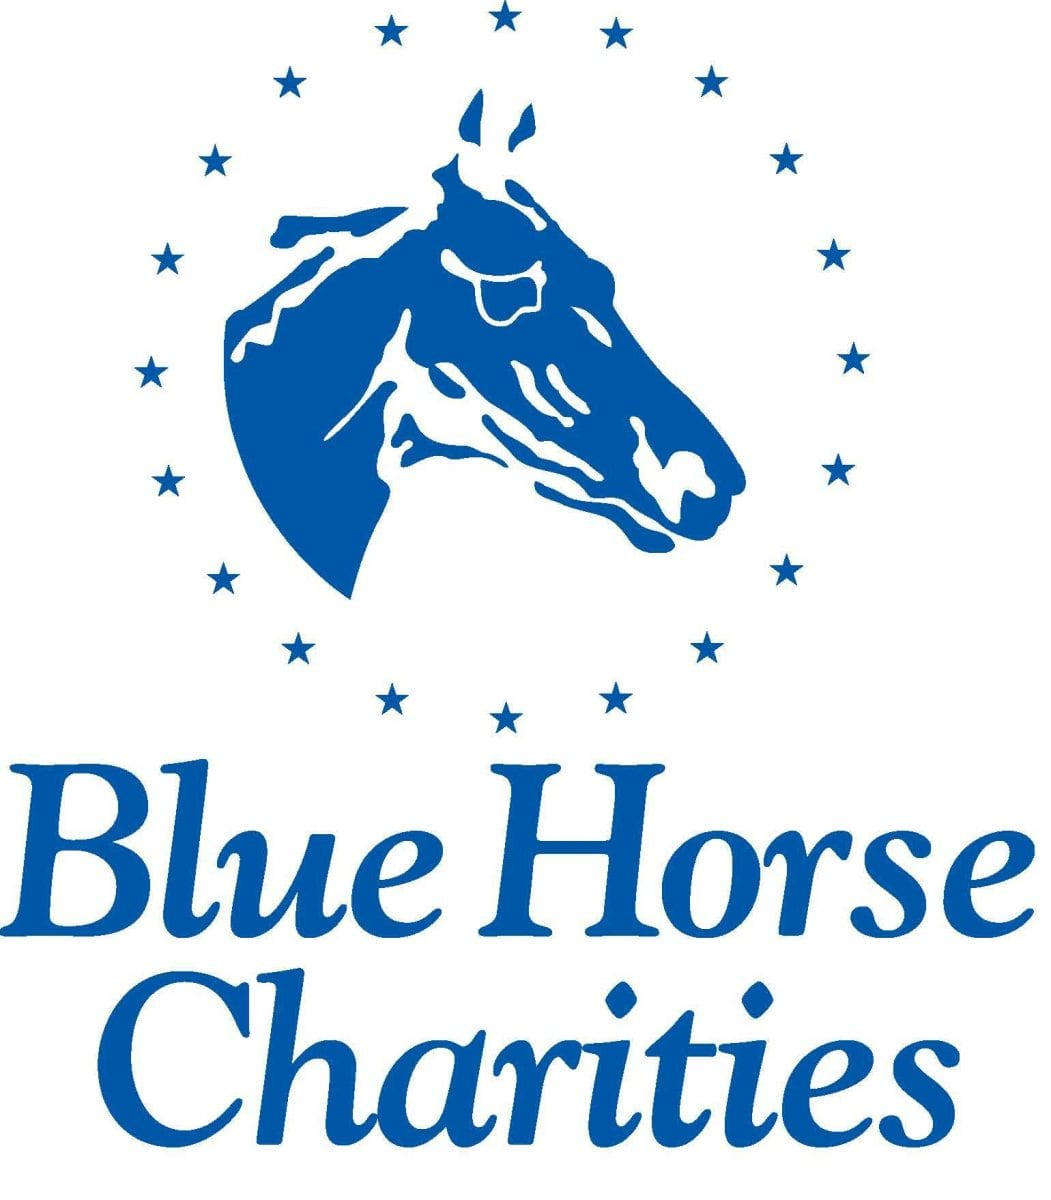 Fasig-Tipton's Blue Horse Charities awards $117,900